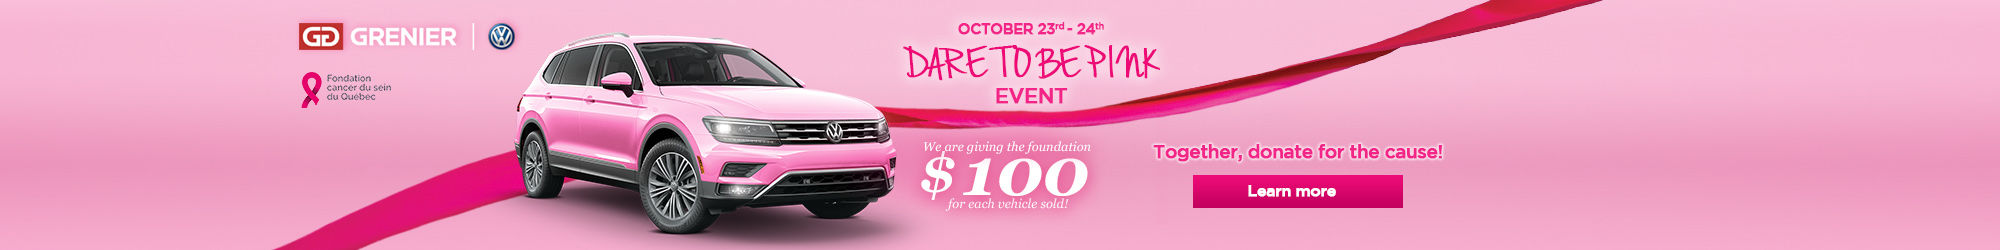 october 23-24 dare to be pink